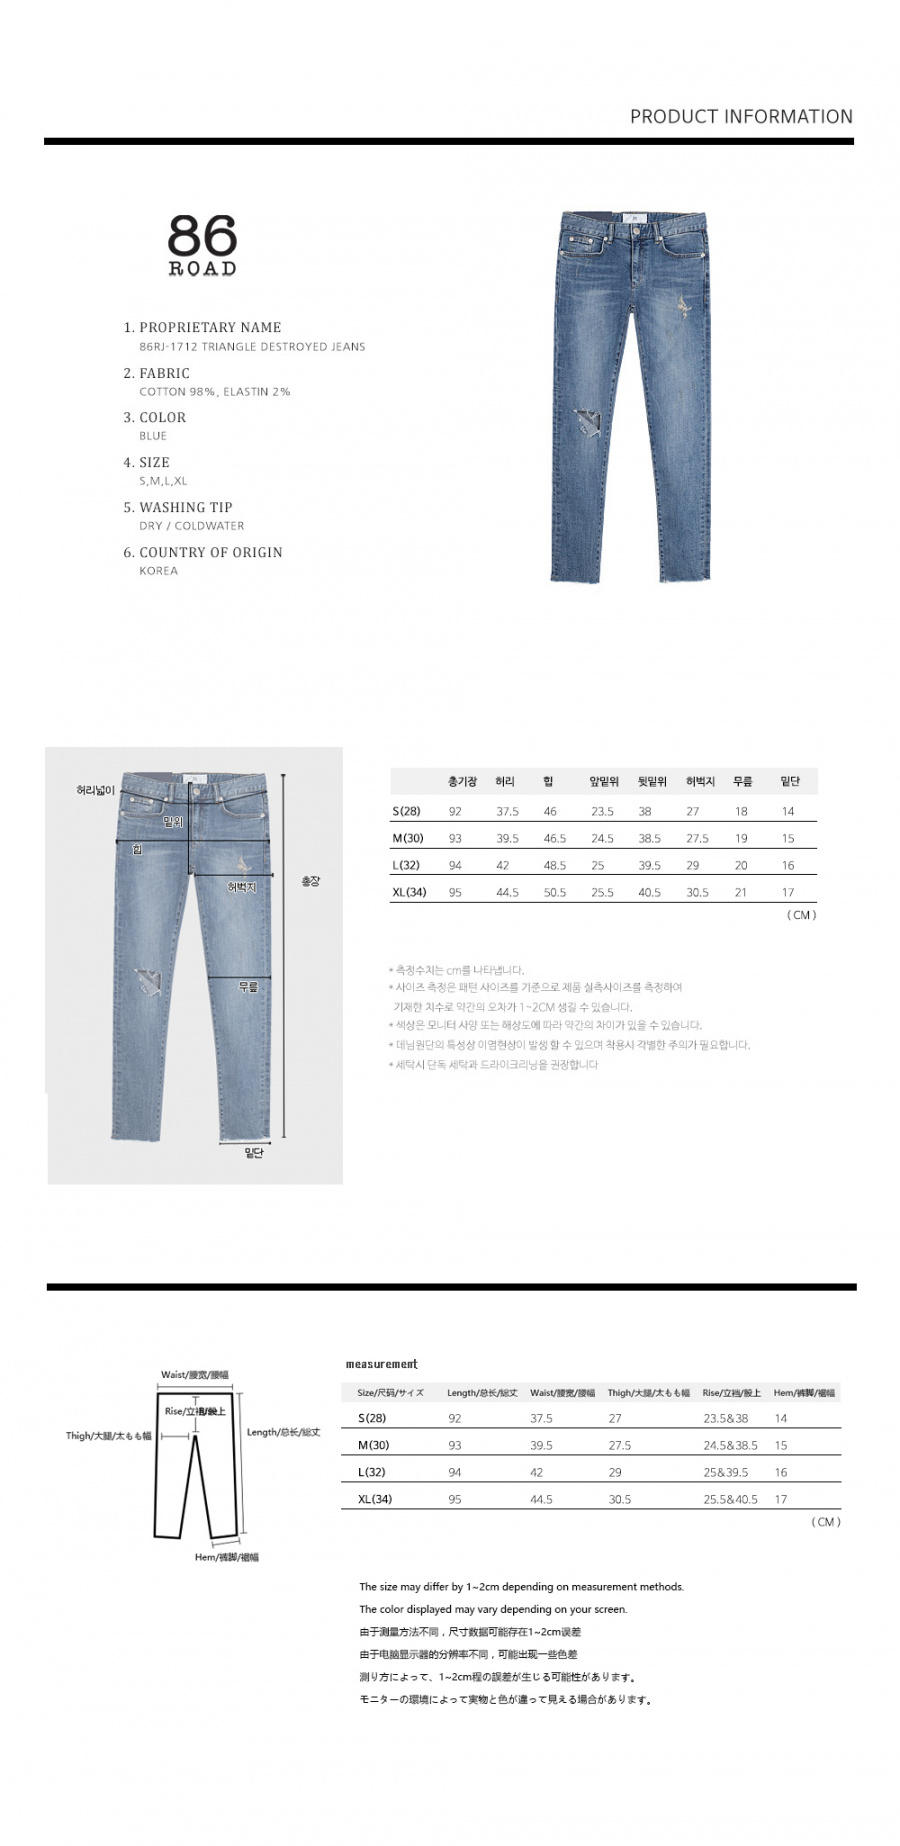 86로드(86ROAD) 86RJ-1712 triangle destroyed jeans